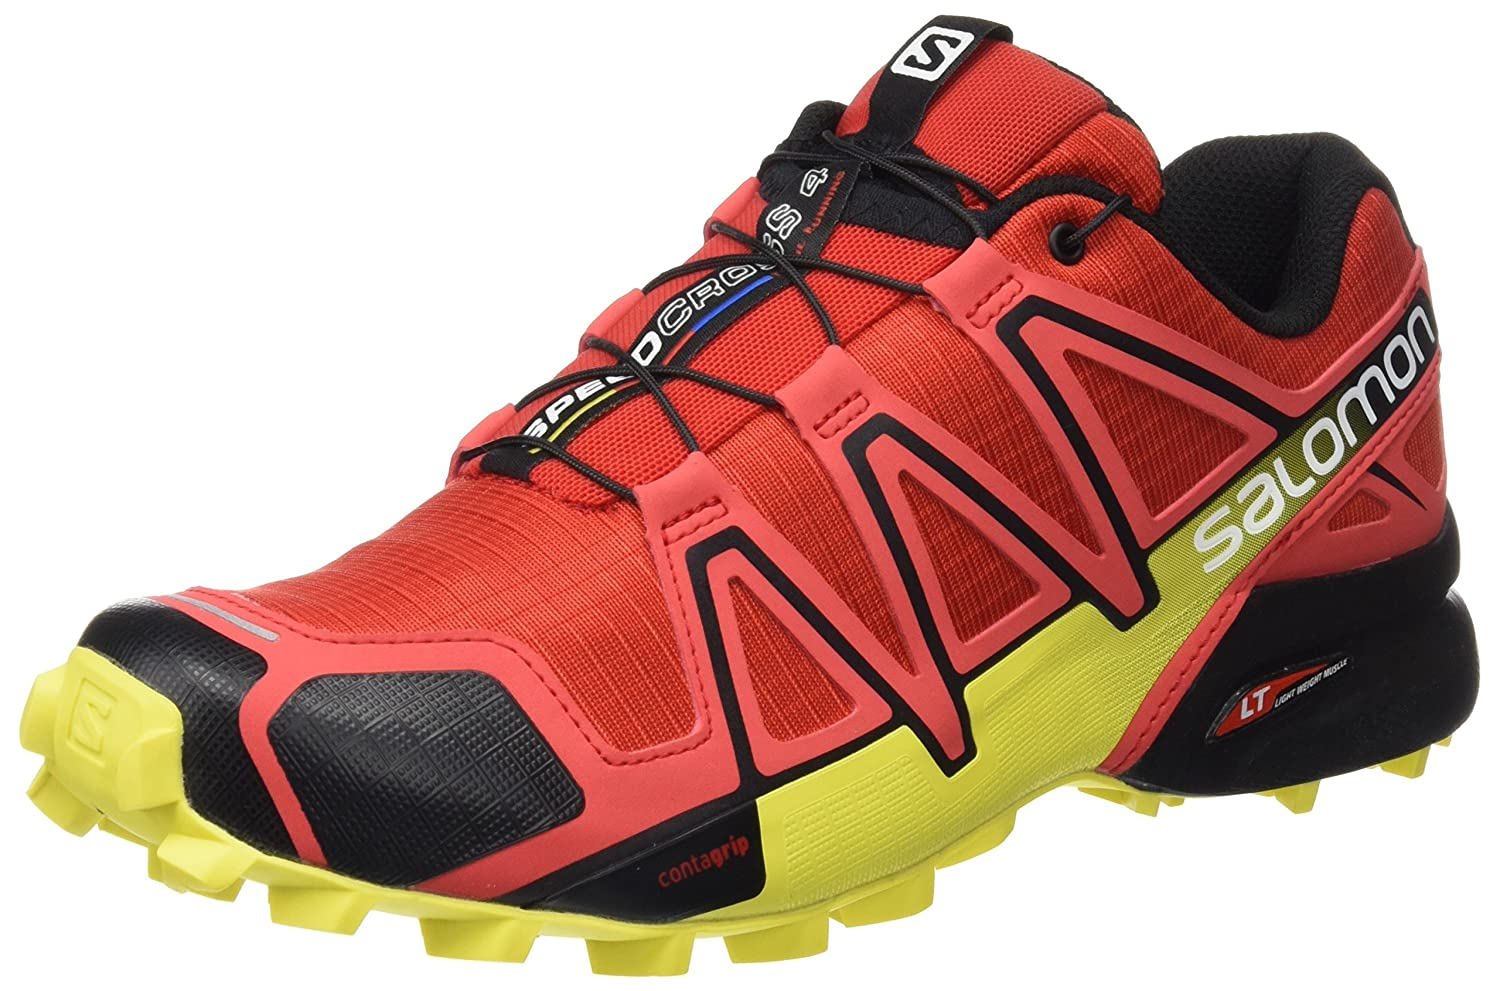 Salomon Herren Speedcross 4 Traillaufschuhe  48 EU|Radiant Red/Black/Corona Yellow